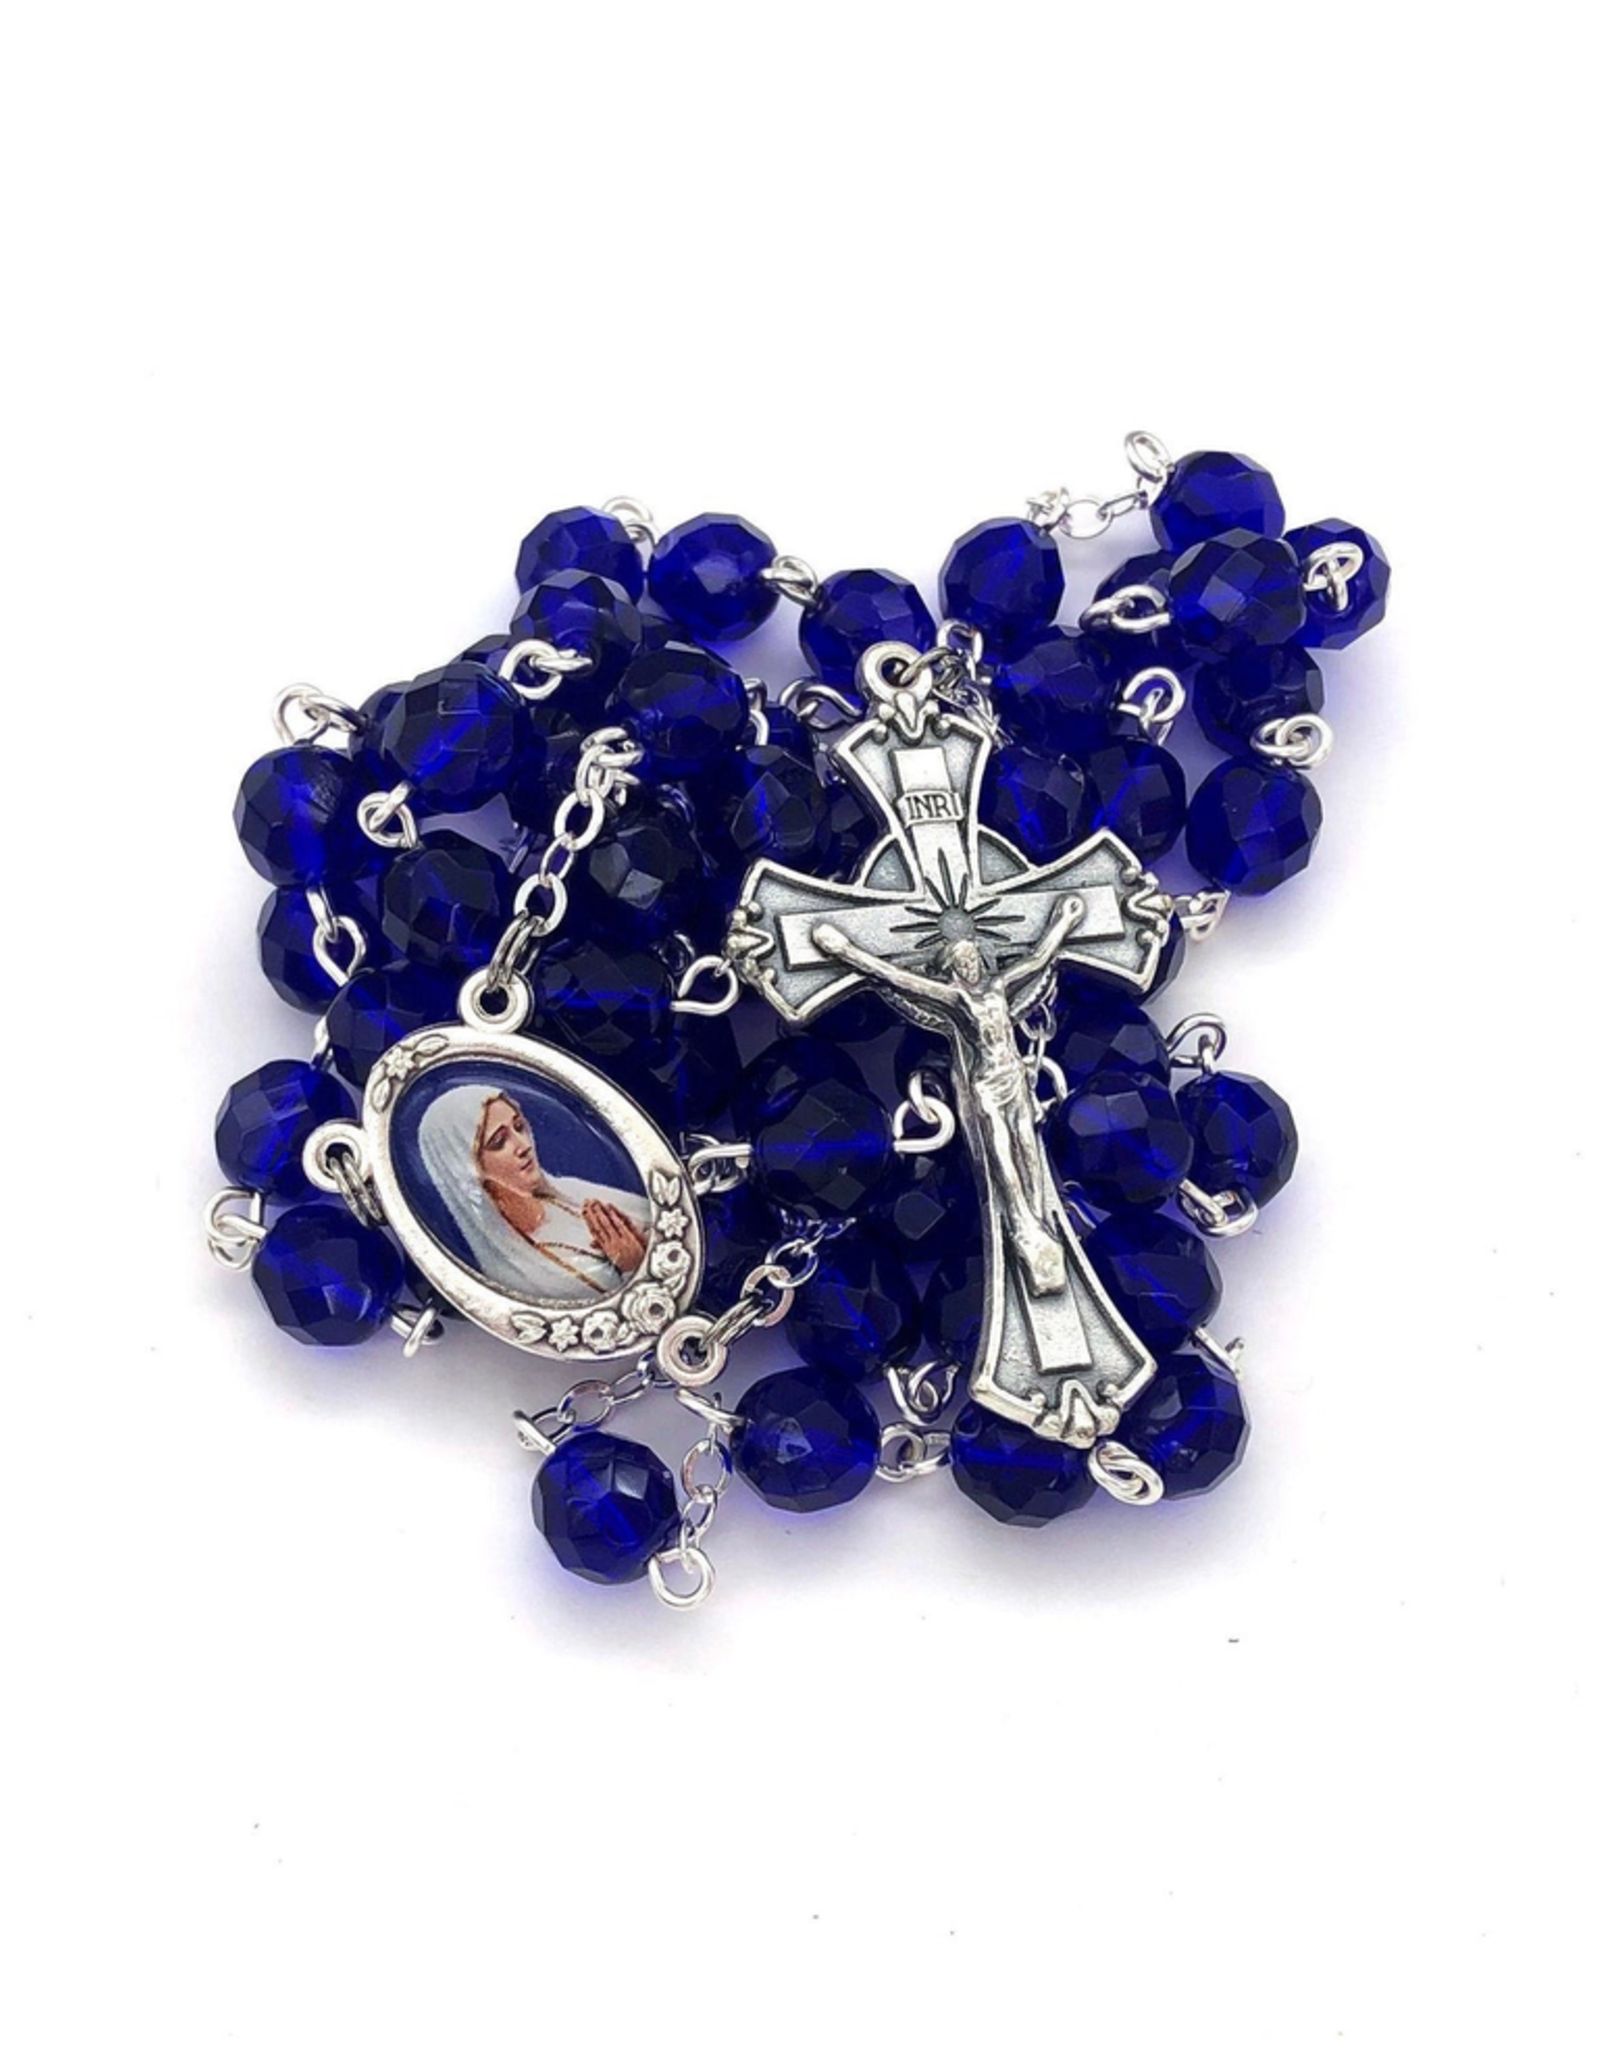 BC Inspirations BC Inspirations:  Handmade Our Lady of Medjugorje Rosary in Blue Czech Glass (large)